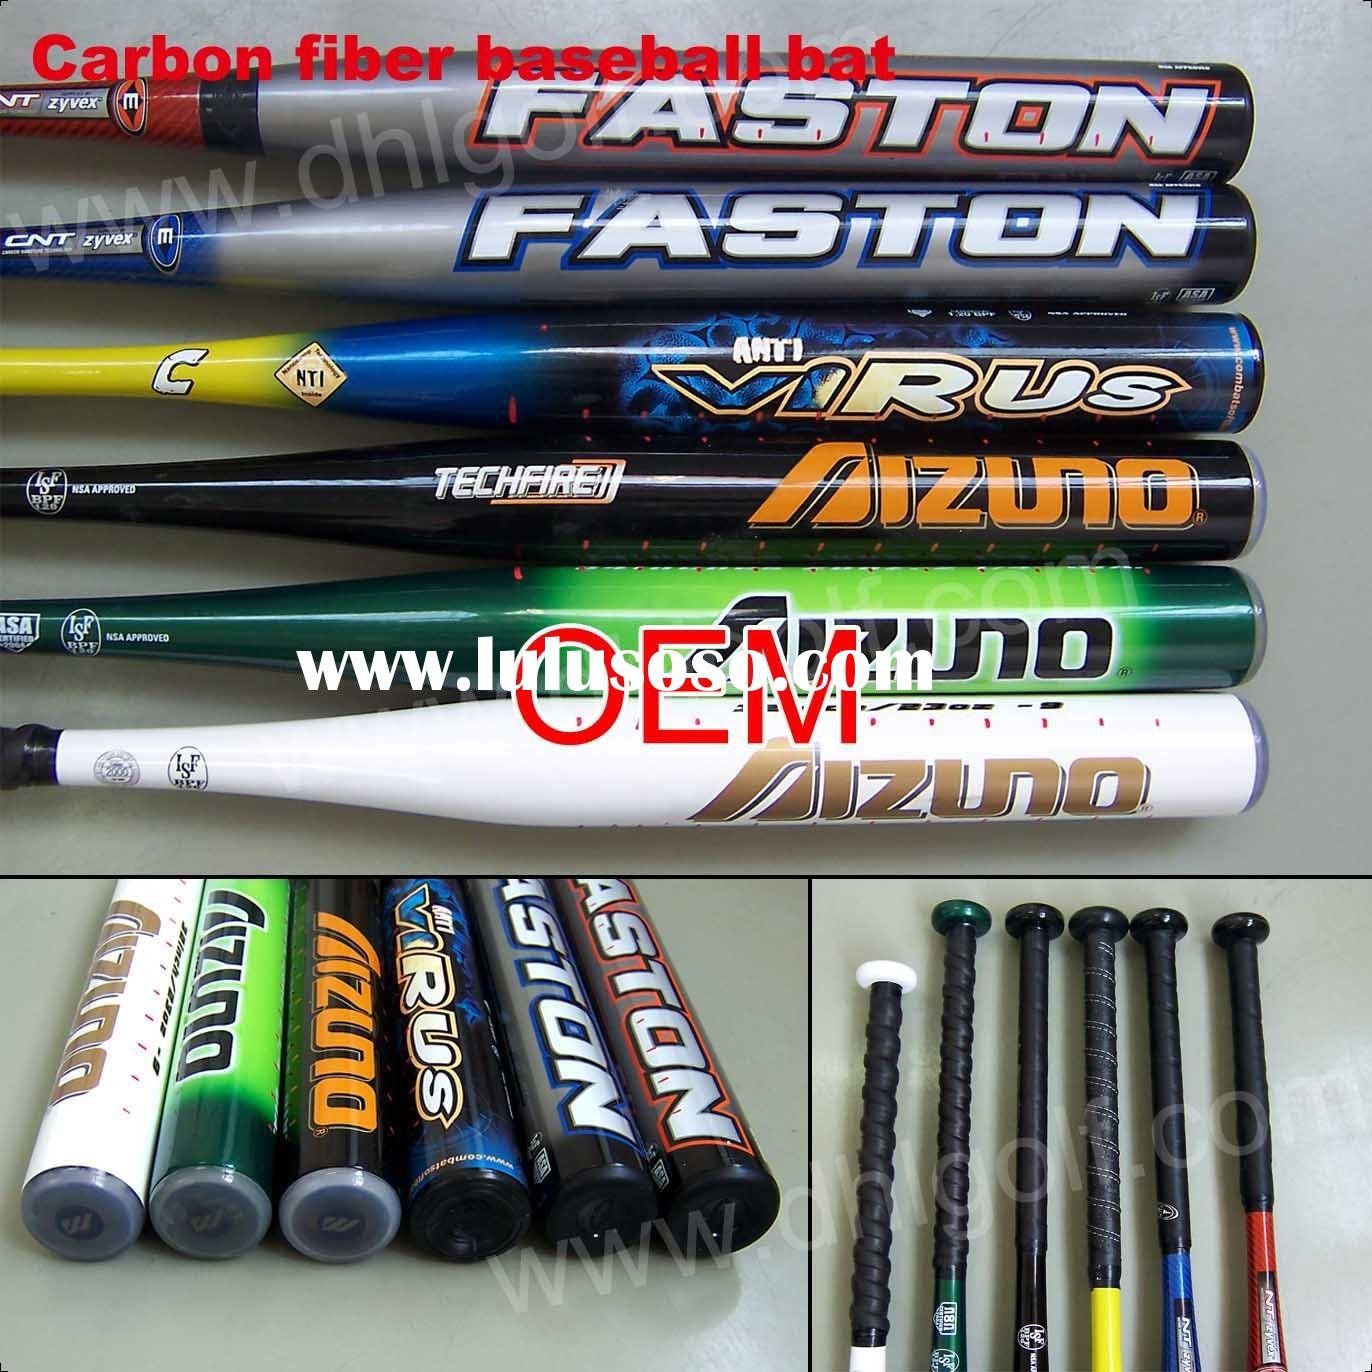 2011 Hot Alu+ Carbon Fiber Baseball Bat/Cheap/Paypal